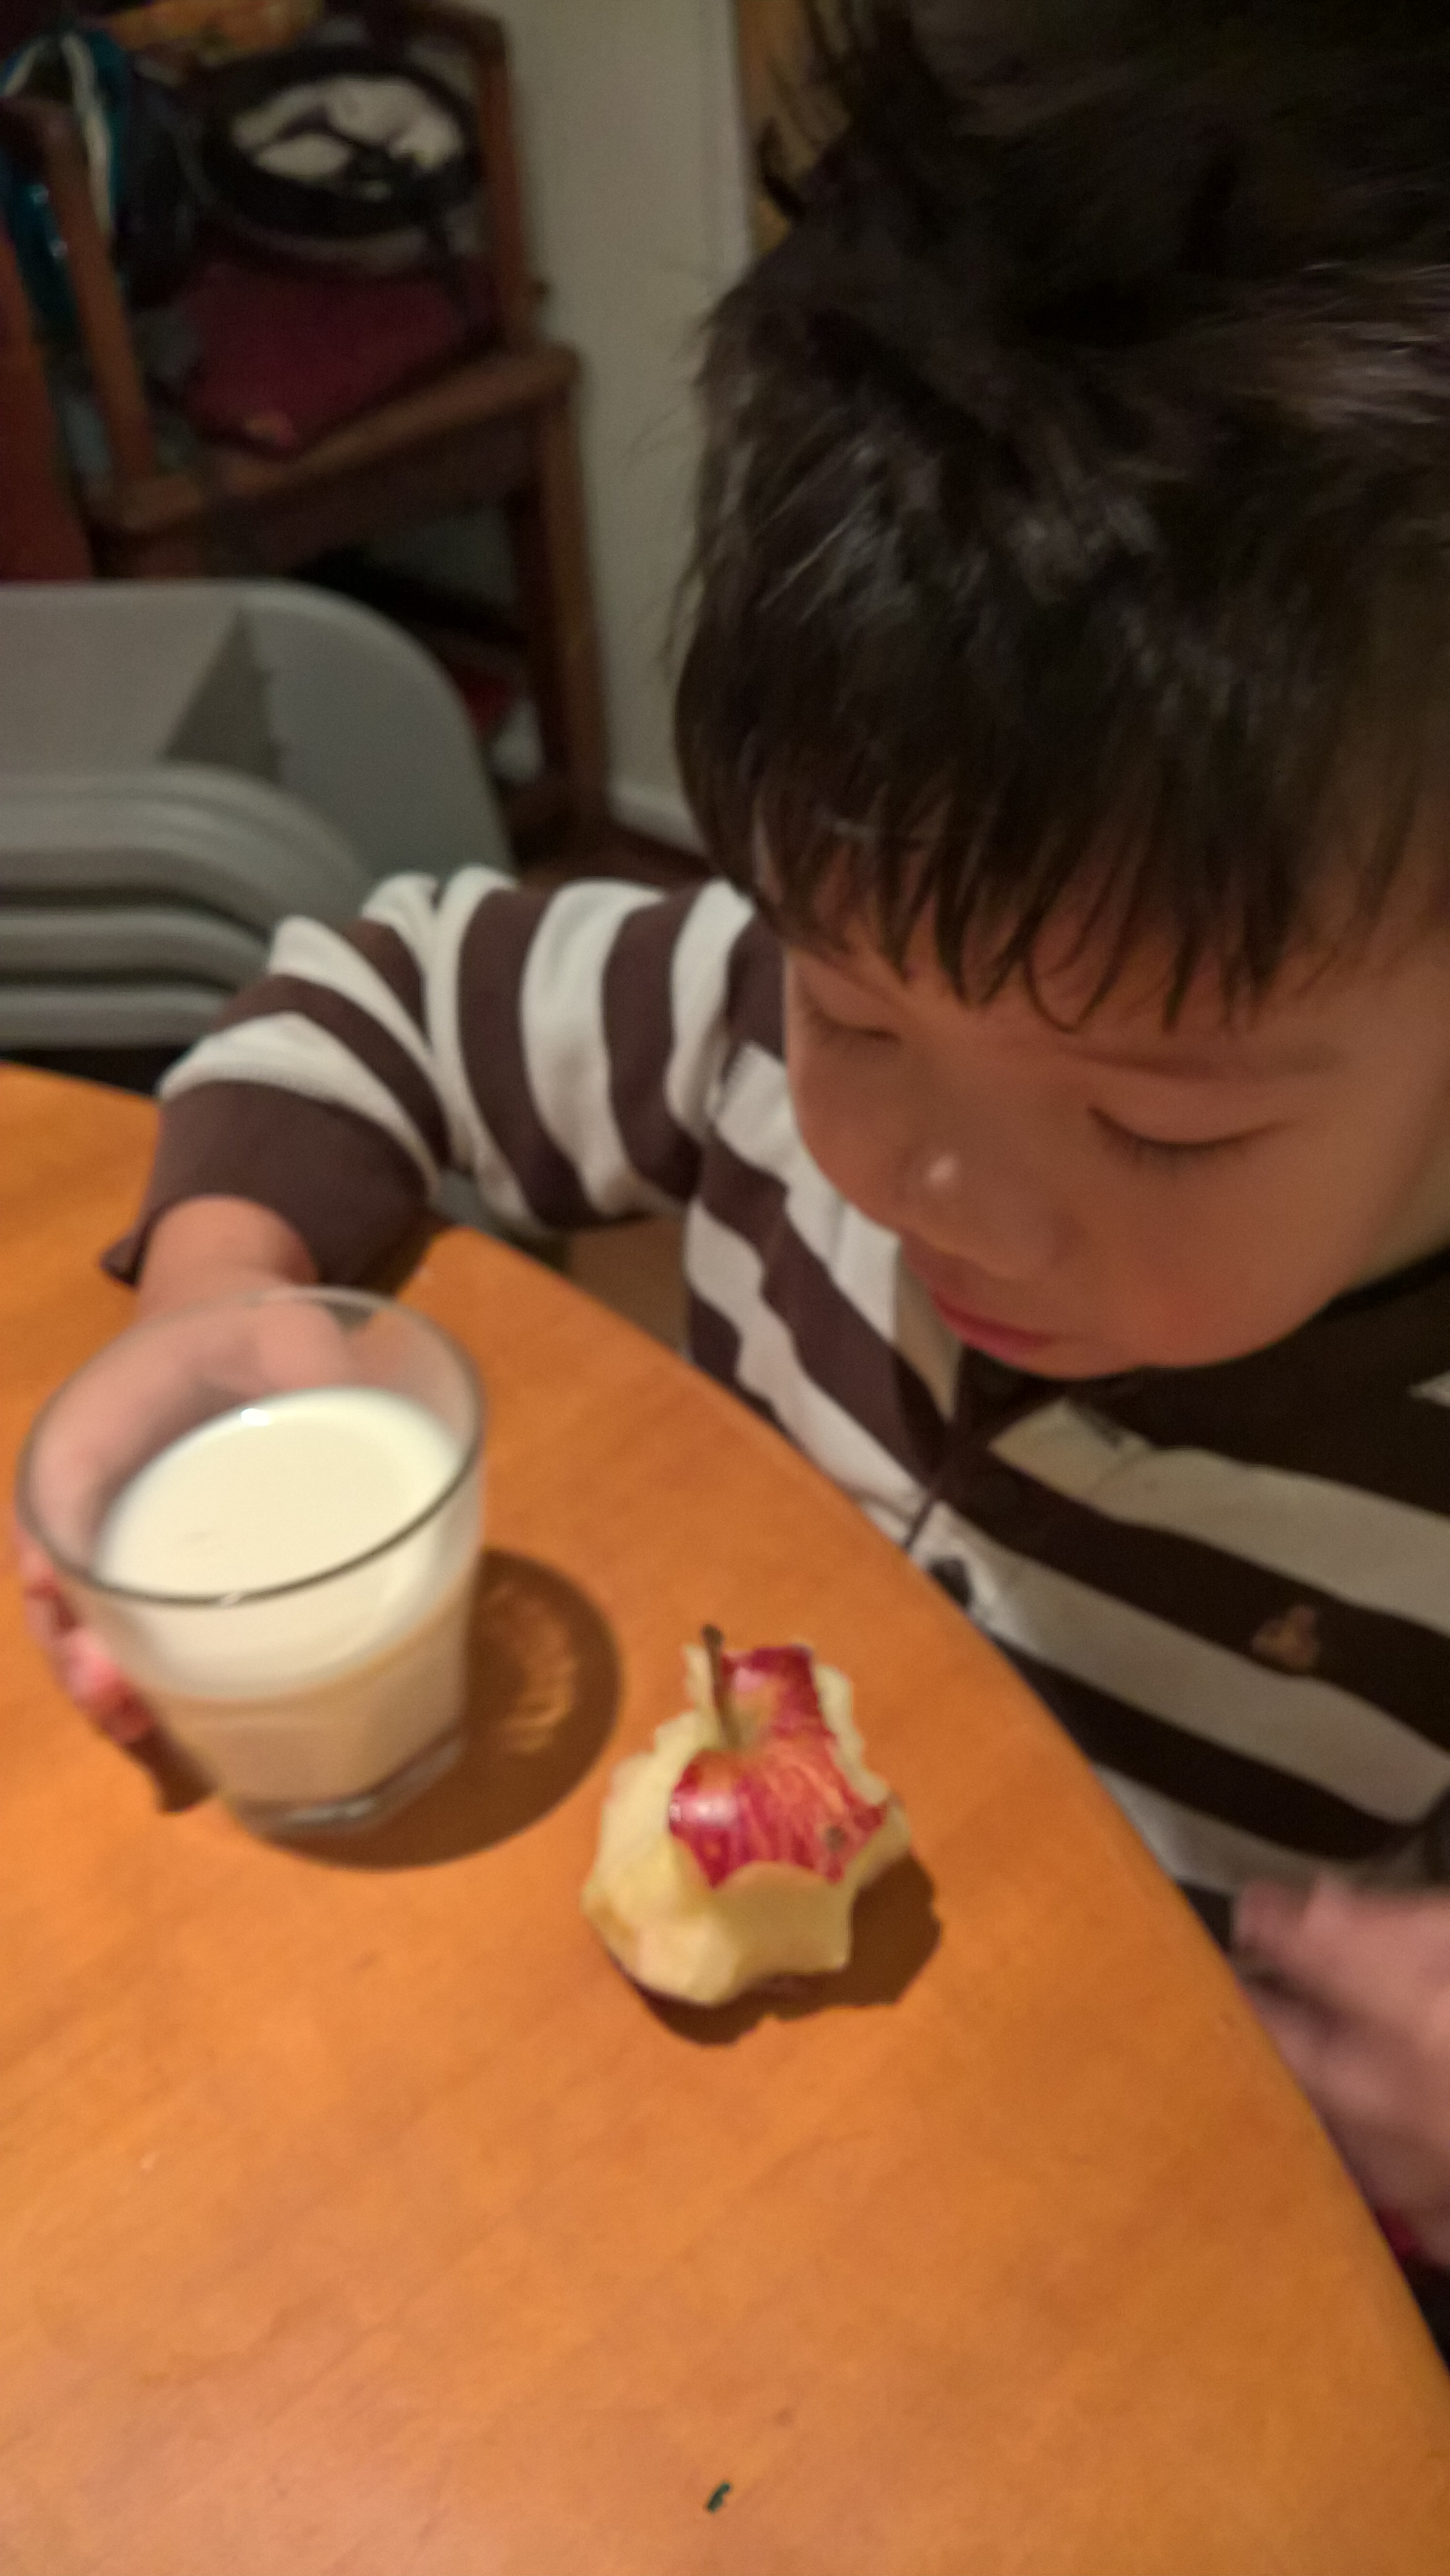 Little A drinking a glass of milk and eating an apple